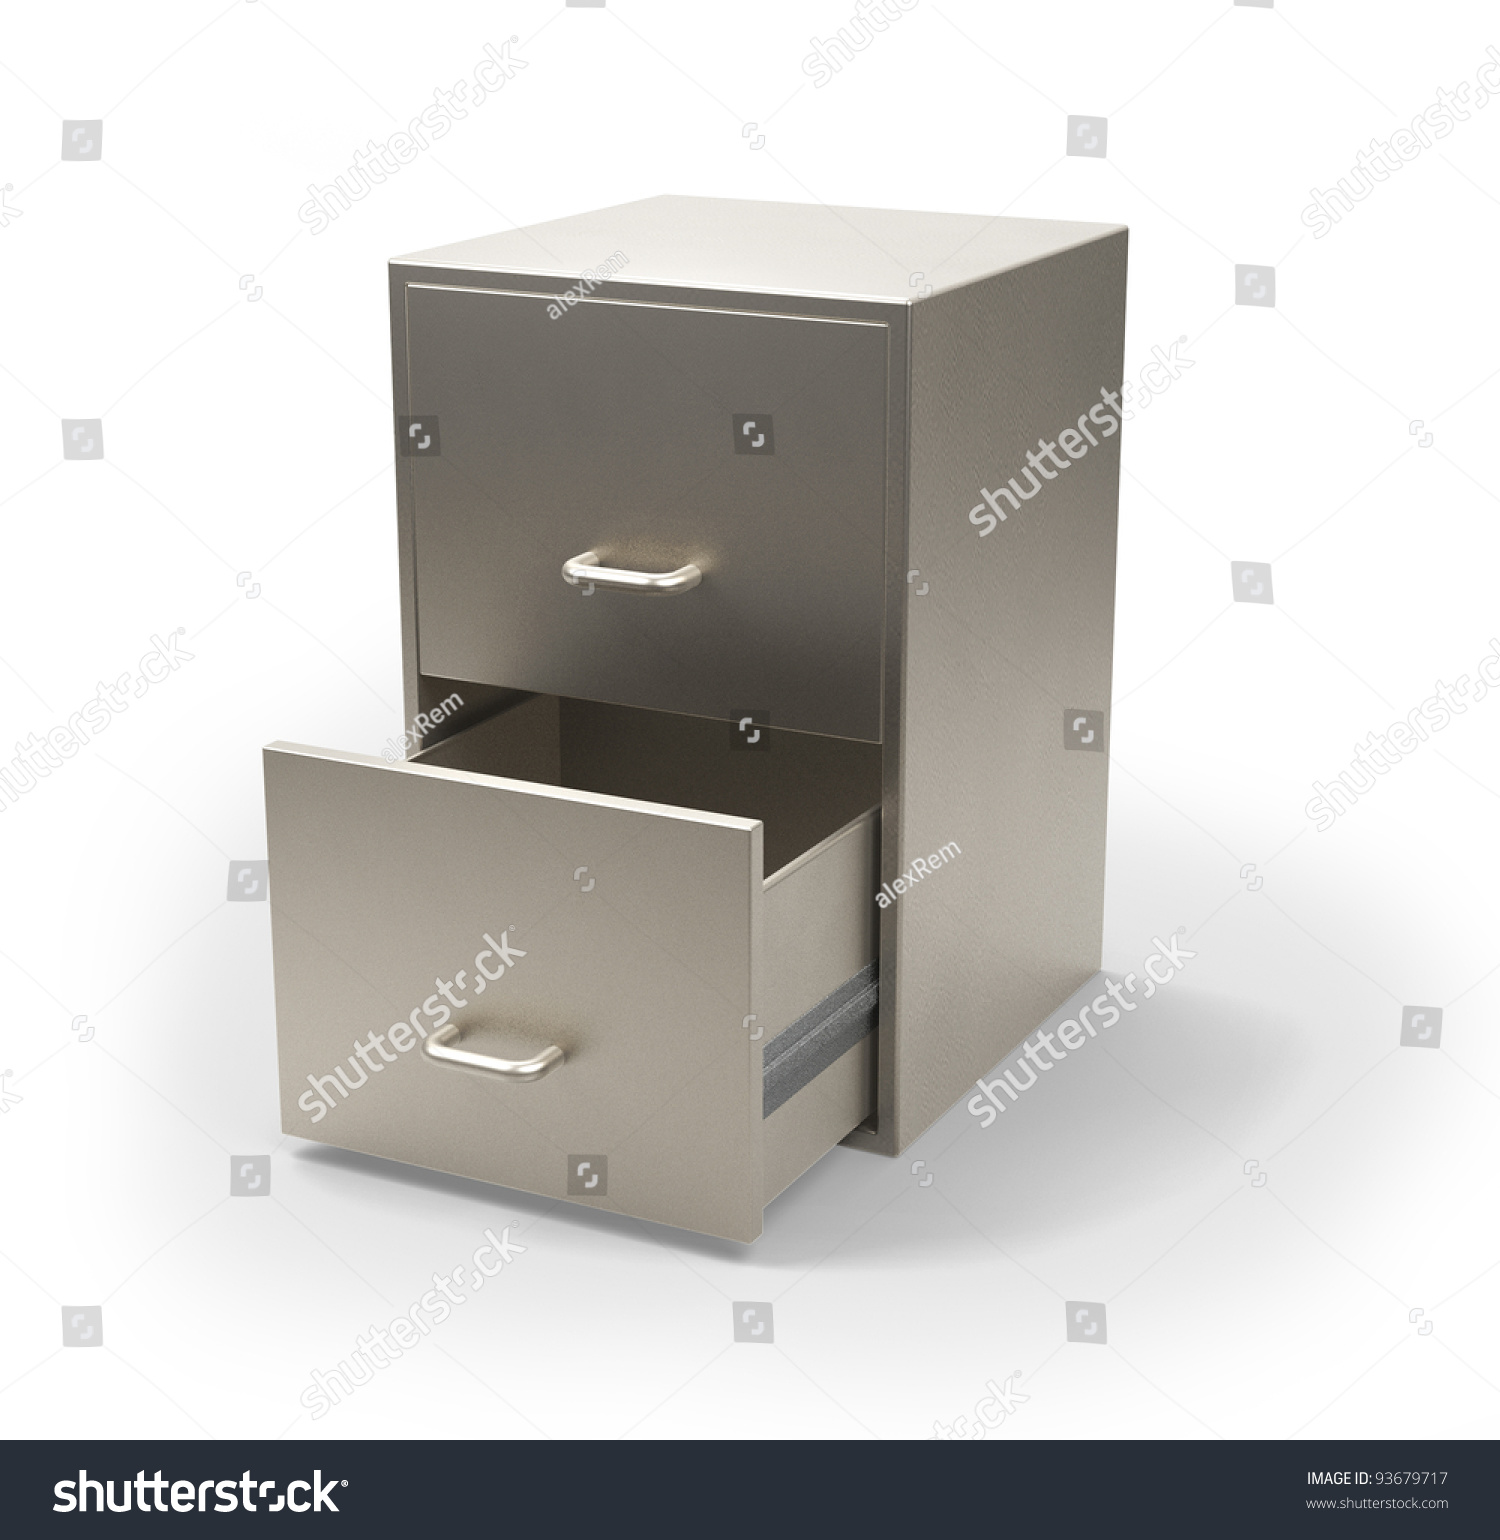 Cabinet For Documents Isolated On White 3d Model Stock